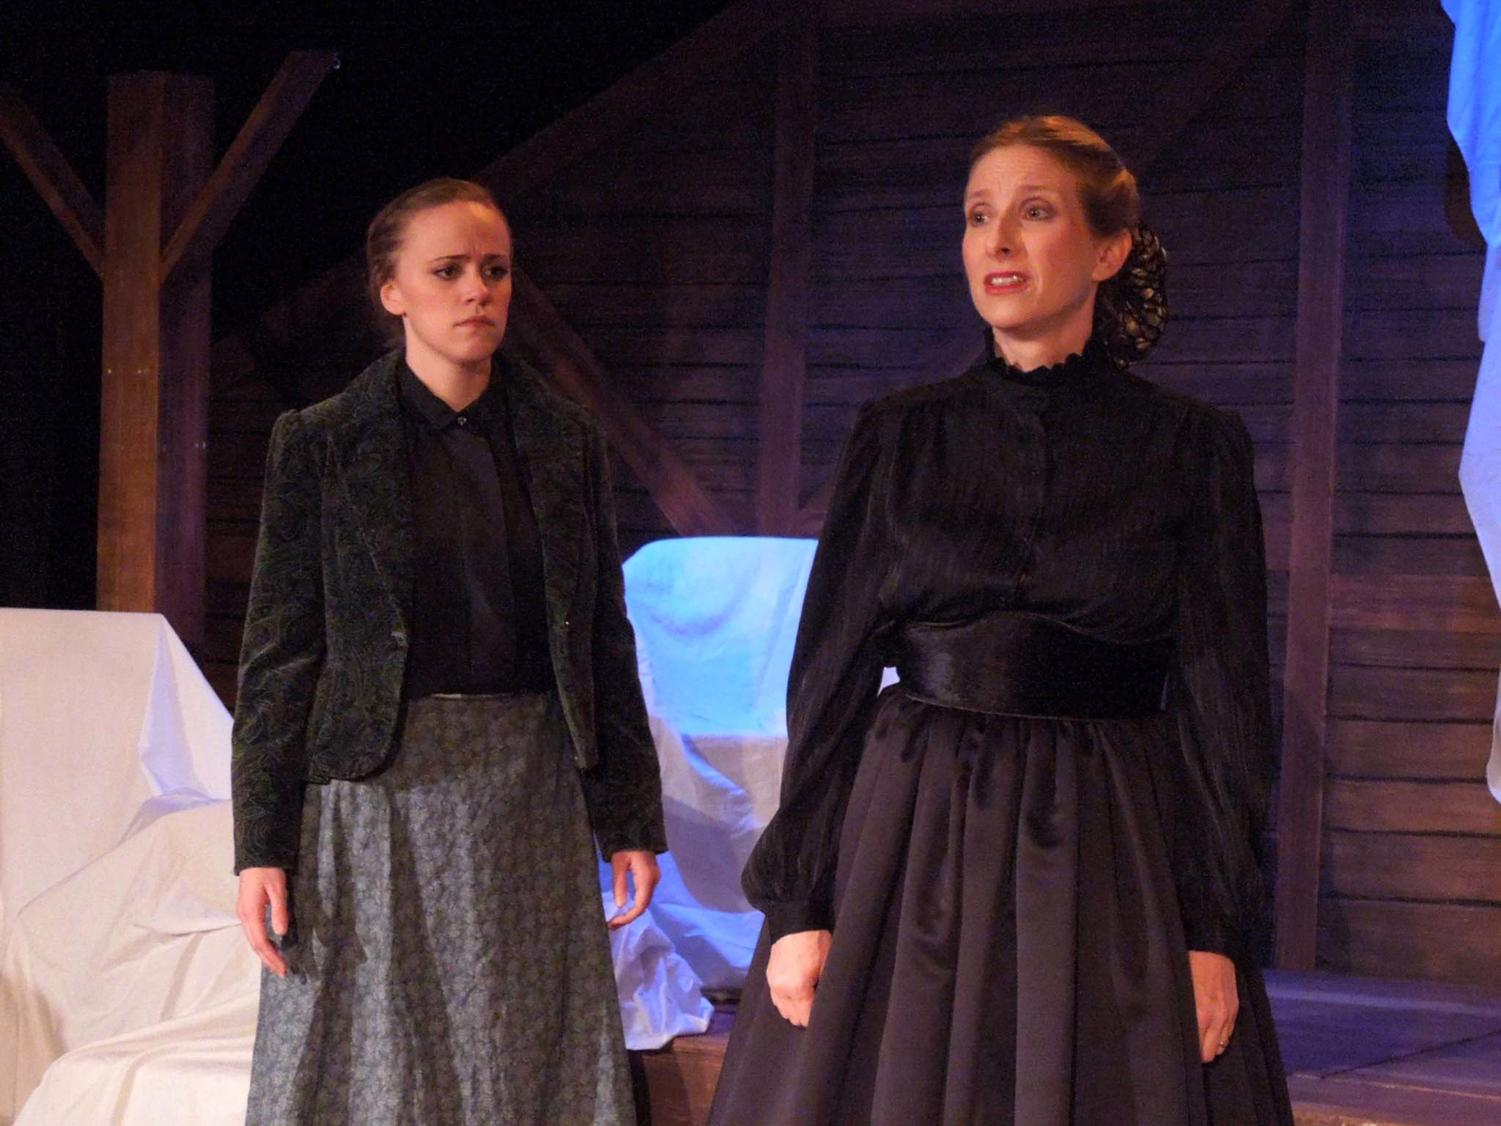 Emily Price acts as Marmee in the play, Little Women, accompanied by her colleague, Jo, at the Costa Mesa Playhouse.